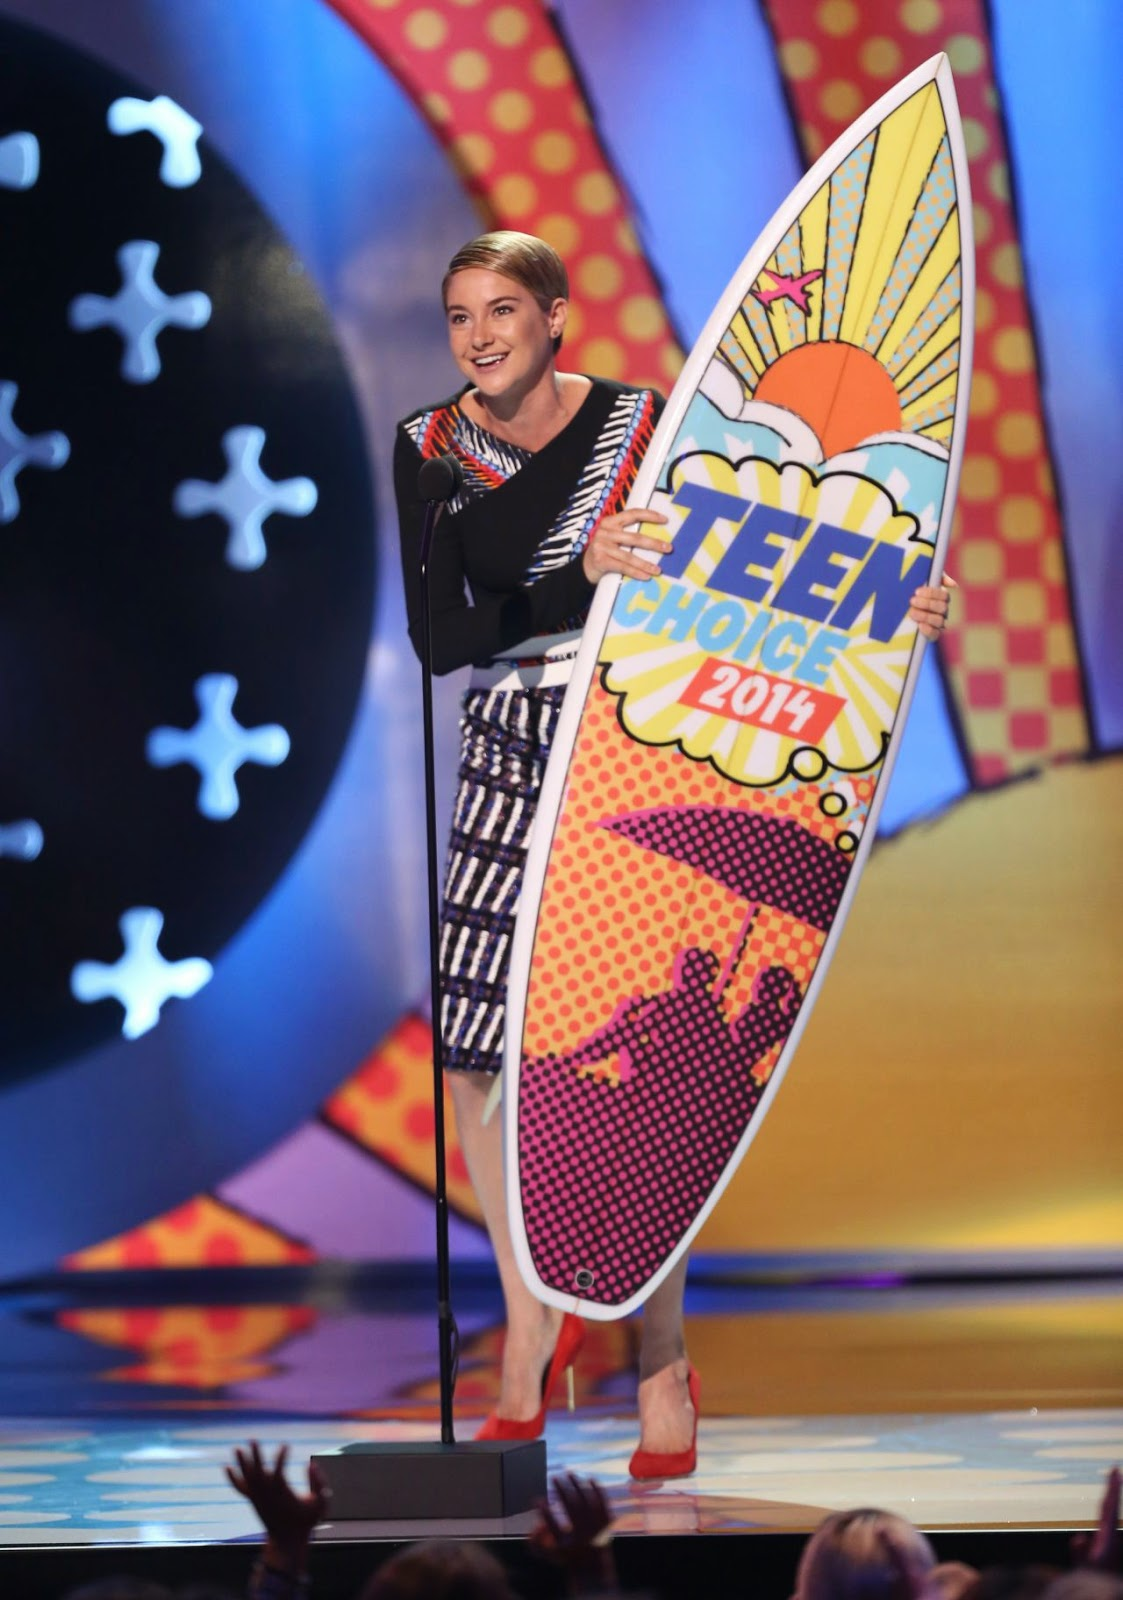 Shailene Woodley arrives in a Peter Pilotto look at the 2014 Teen Choice Awards